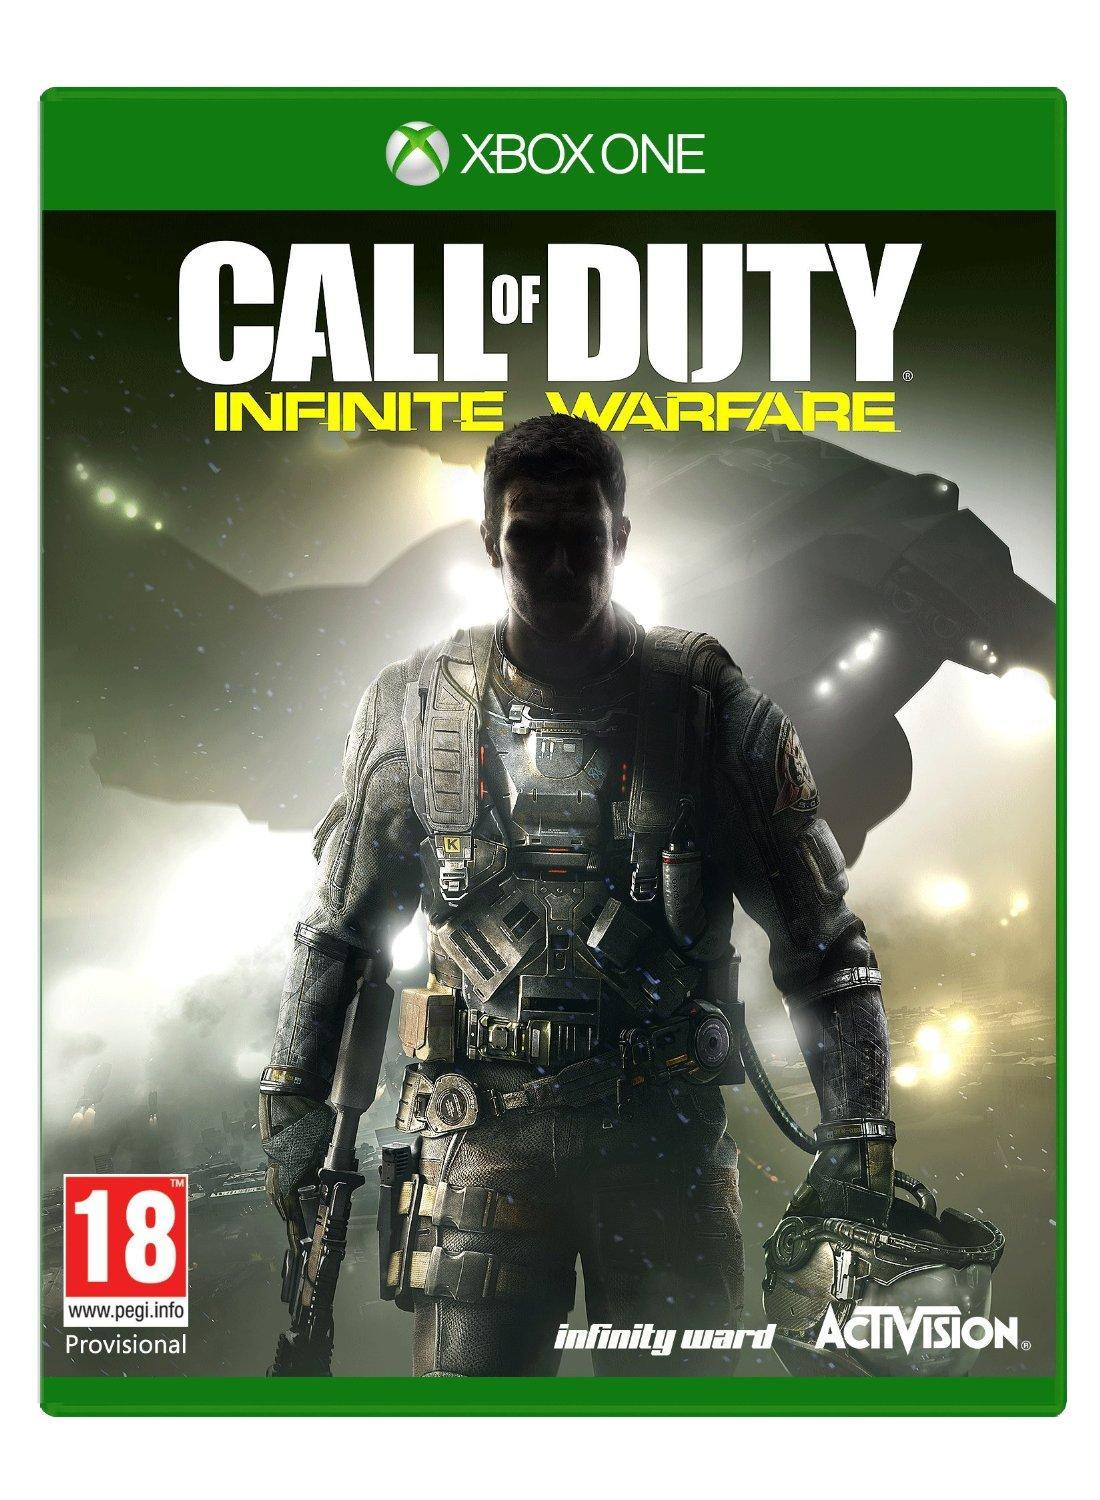 ACTIVISION GAME XBOX ONE MICROSOFTCALL OF DUTY INFINITY WAREFARE